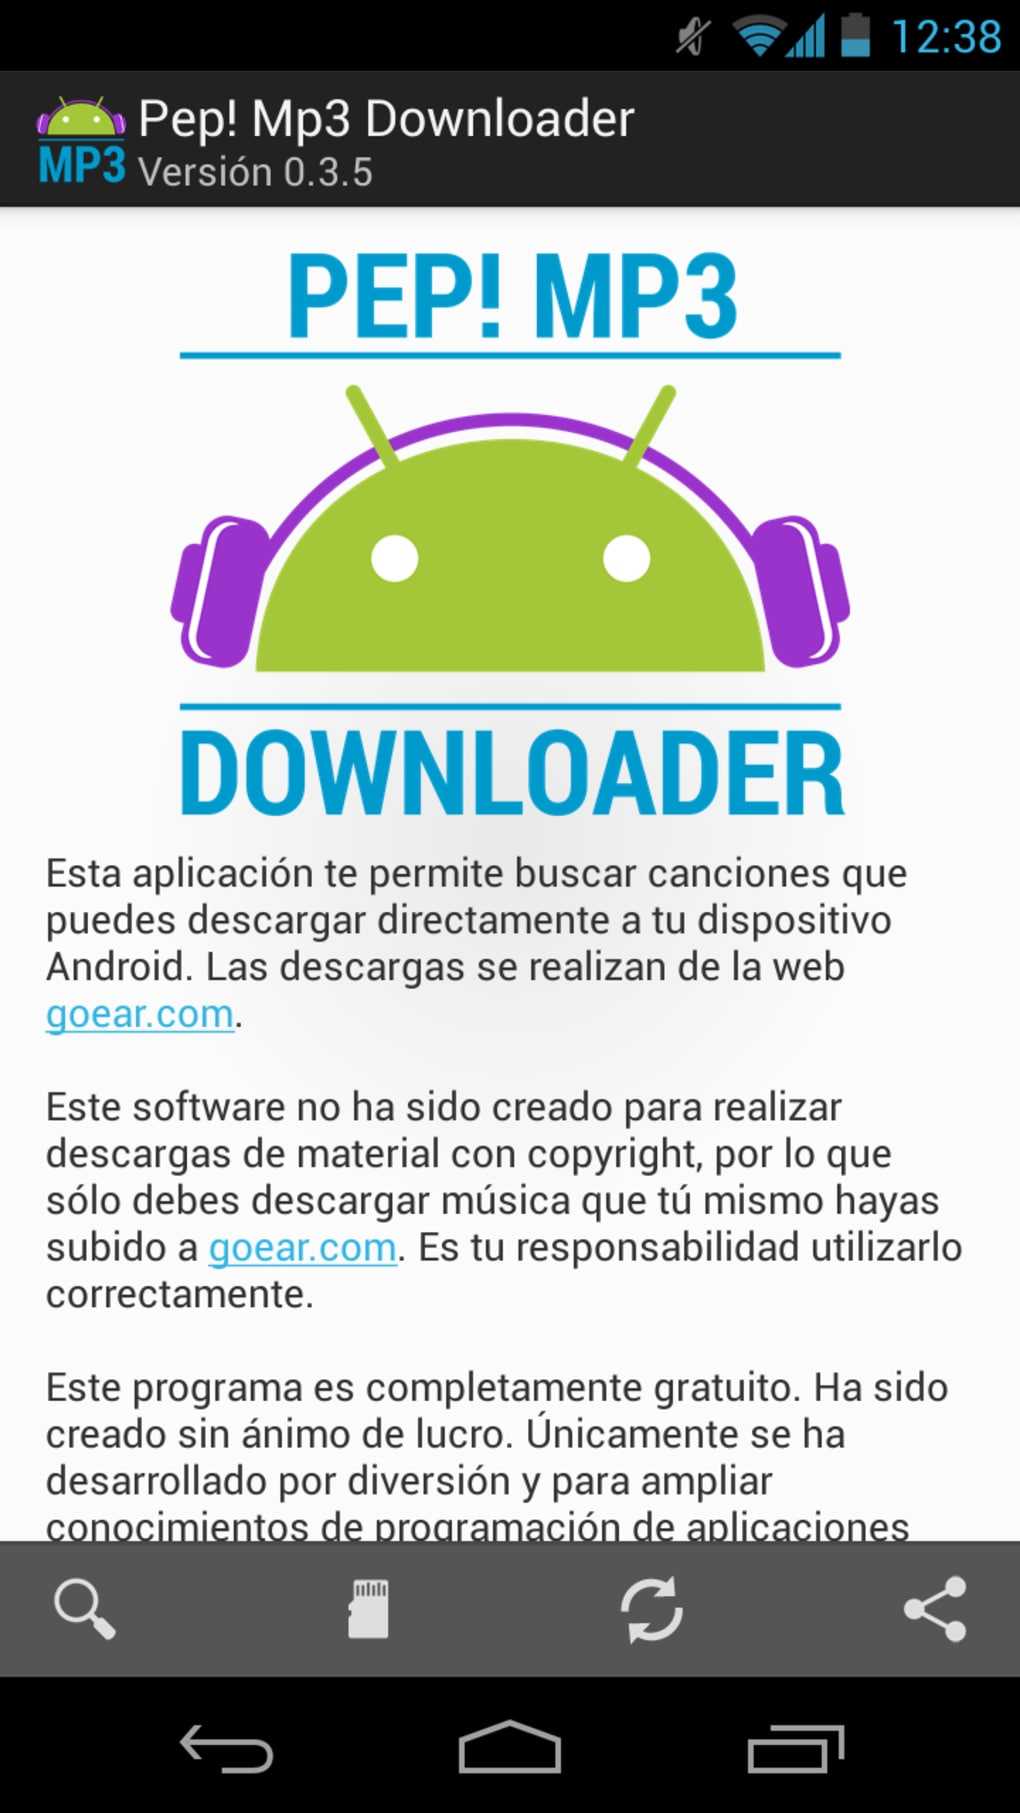 Pep! MP3 Downloader para Android - Descargar